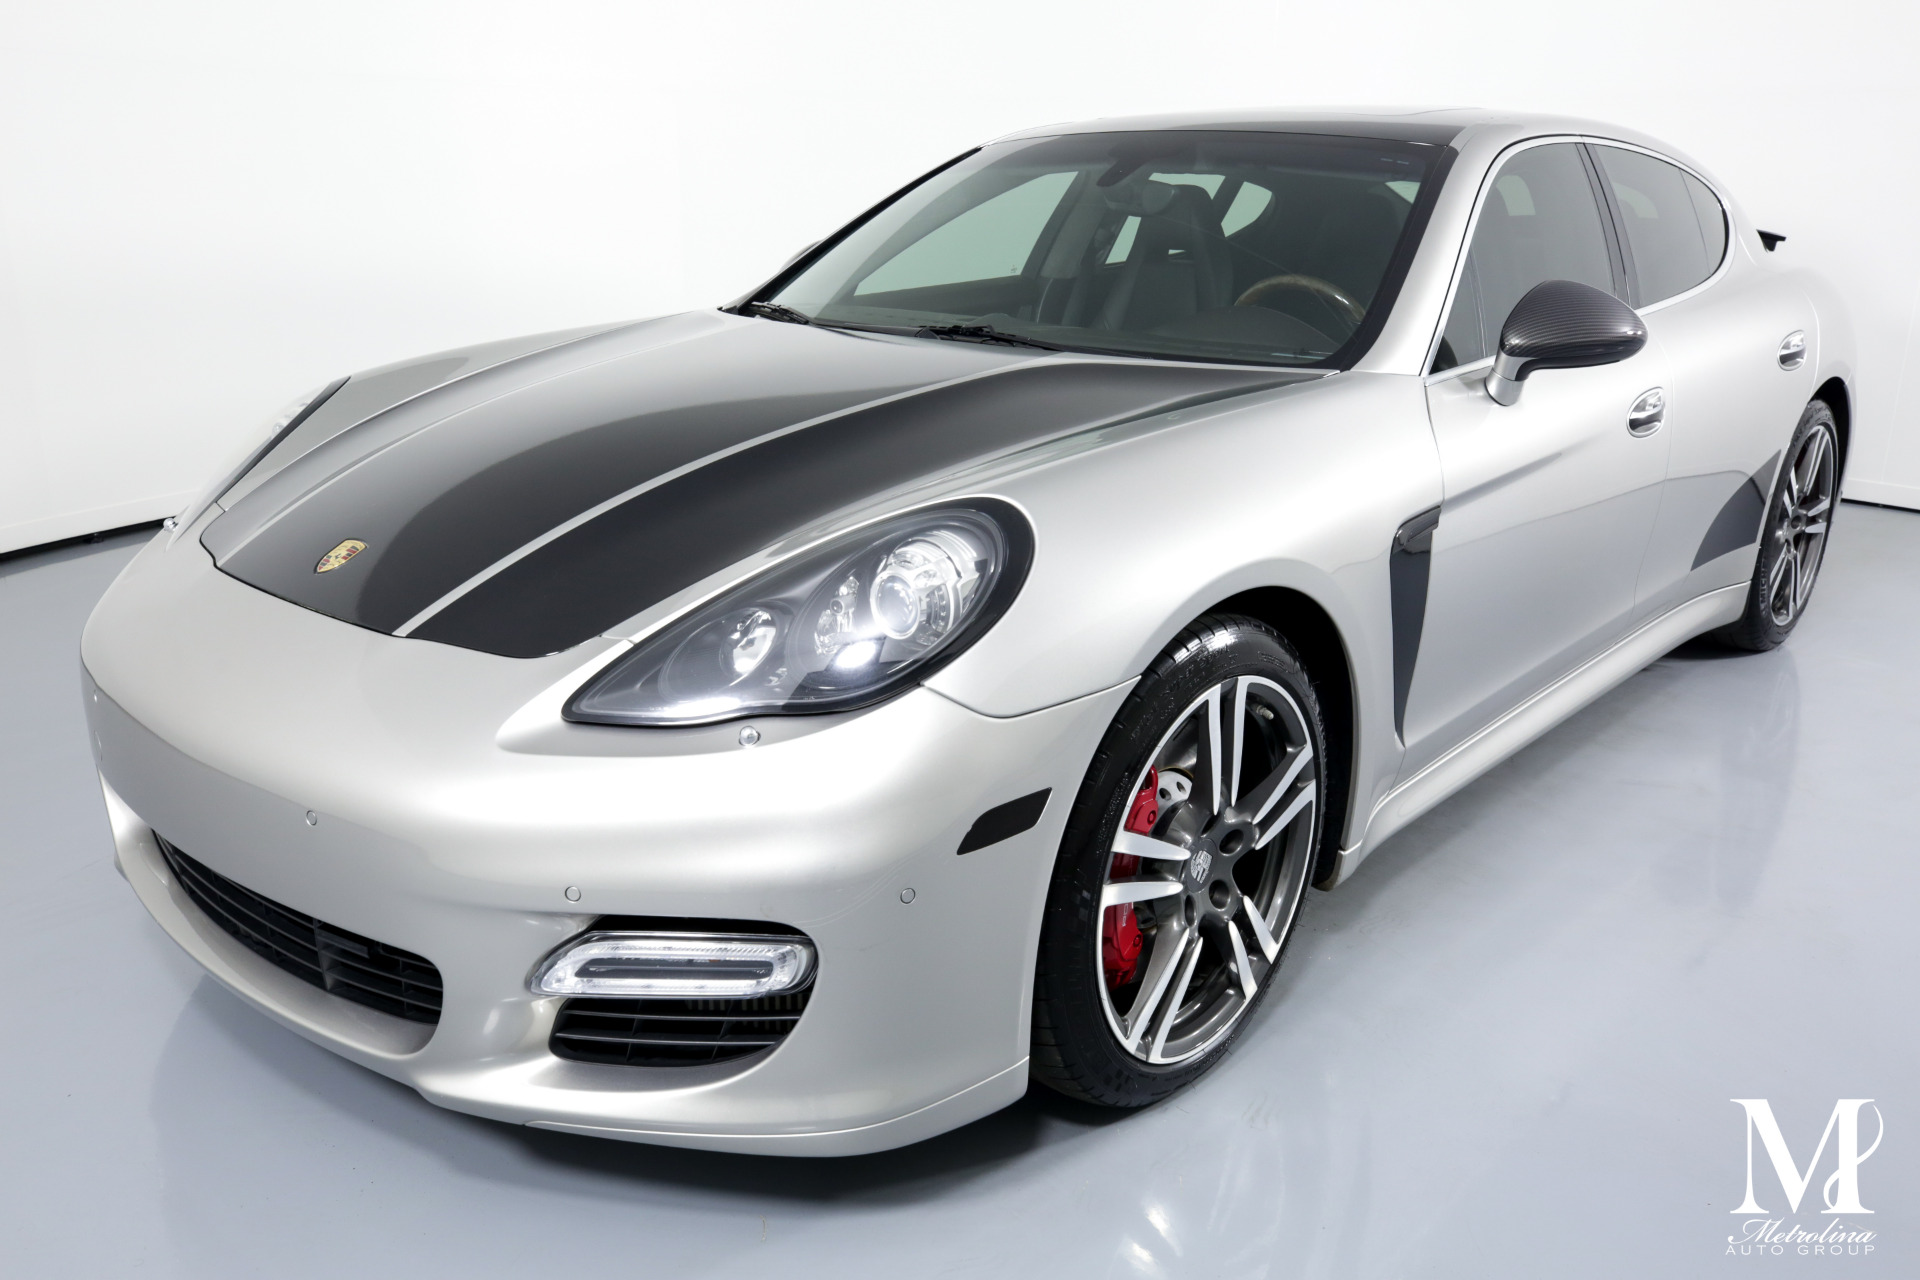 Used 2012 Porsche Panamera Turbo for sale $51,996 at Metrolina Auto Group in Charlotte NC 28217 - 4